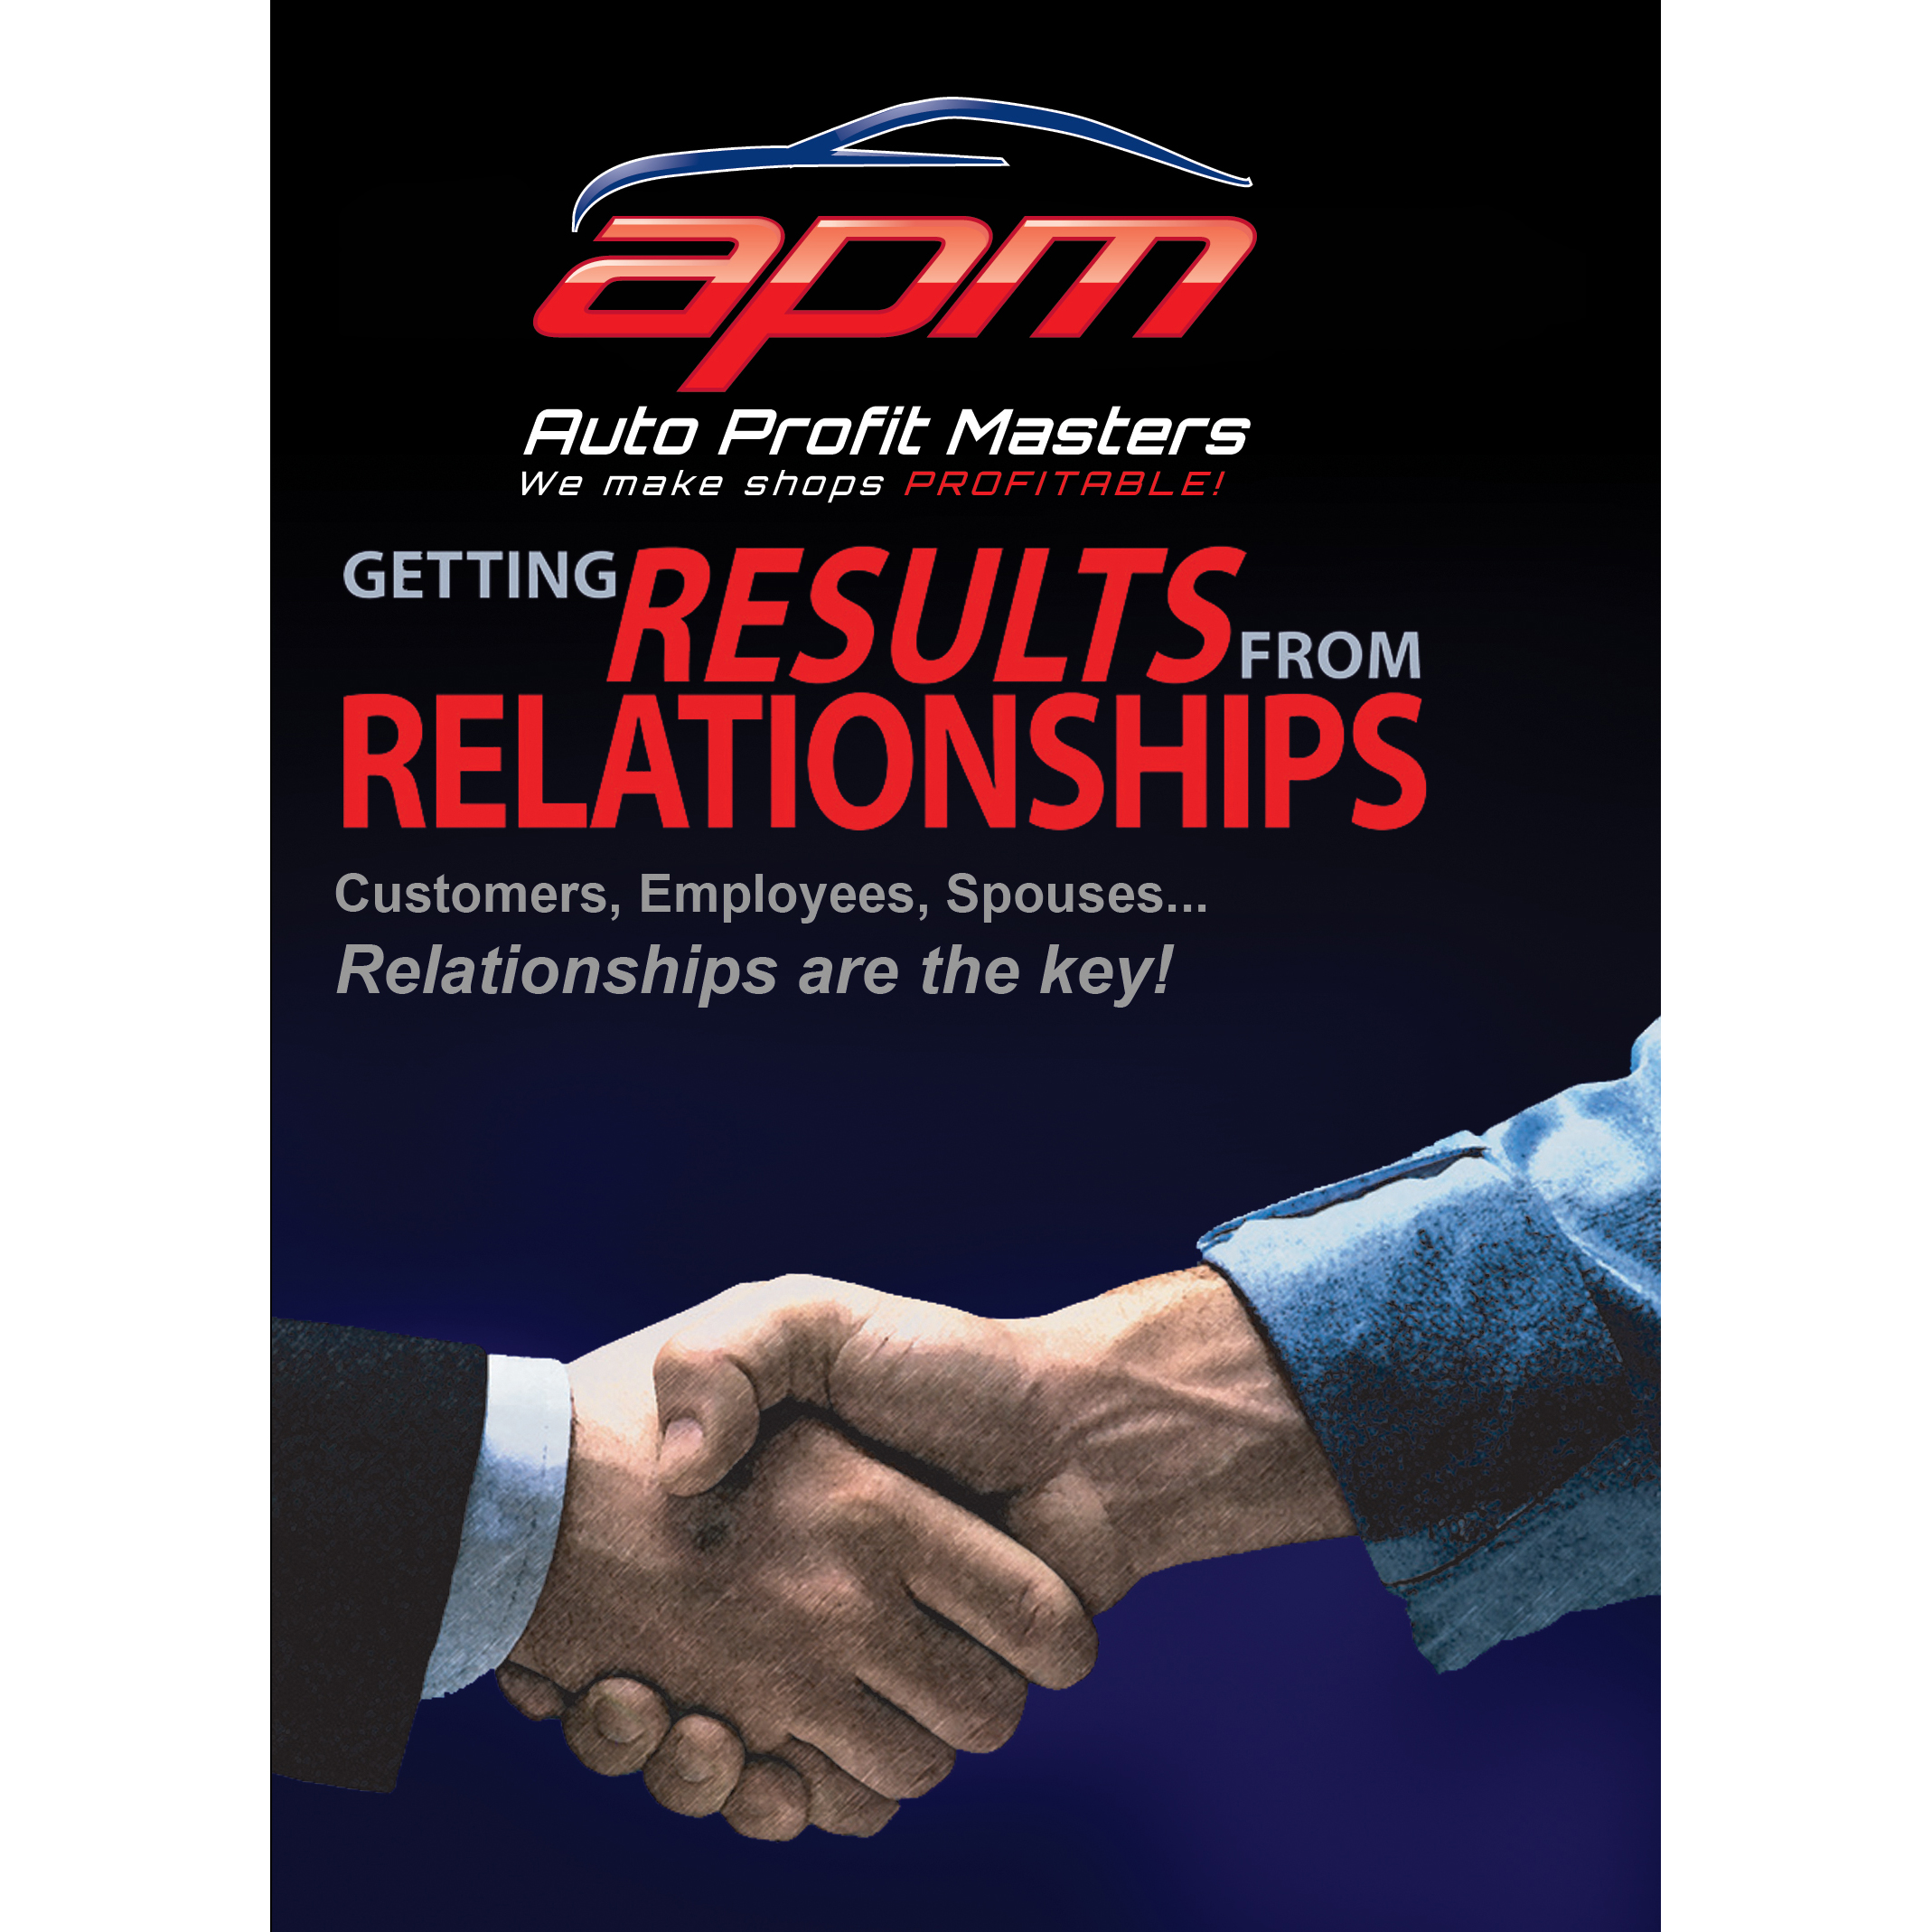 Getting Results from Relationships - AMi Approved Class - Auto Profit Masters Shop Owner Training